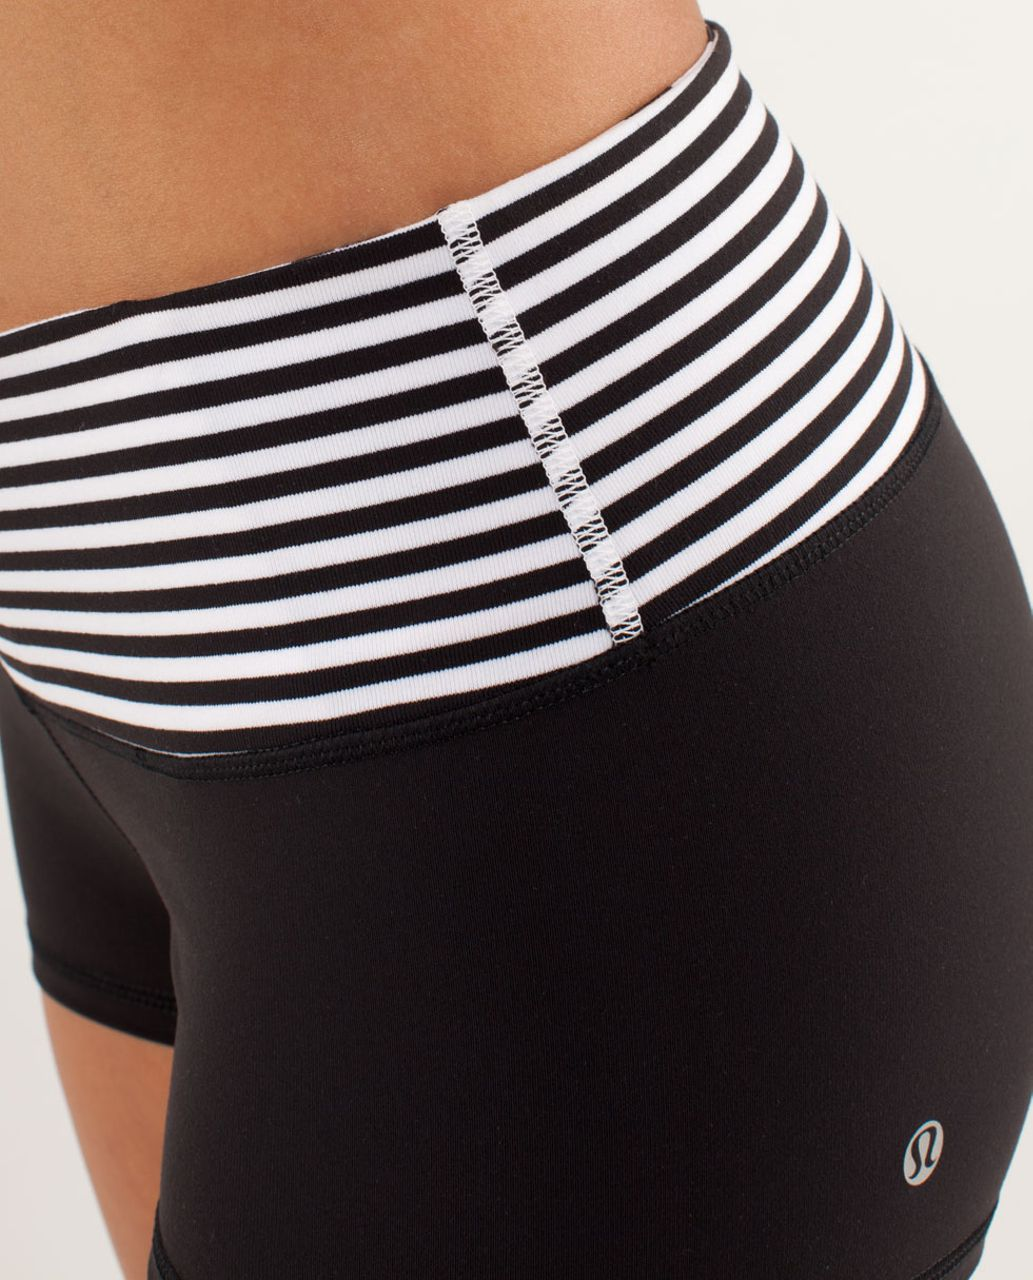 Lululemon Boogie Short - Black / Arrow Chevron White Black / Classic Stripe Black White / Black